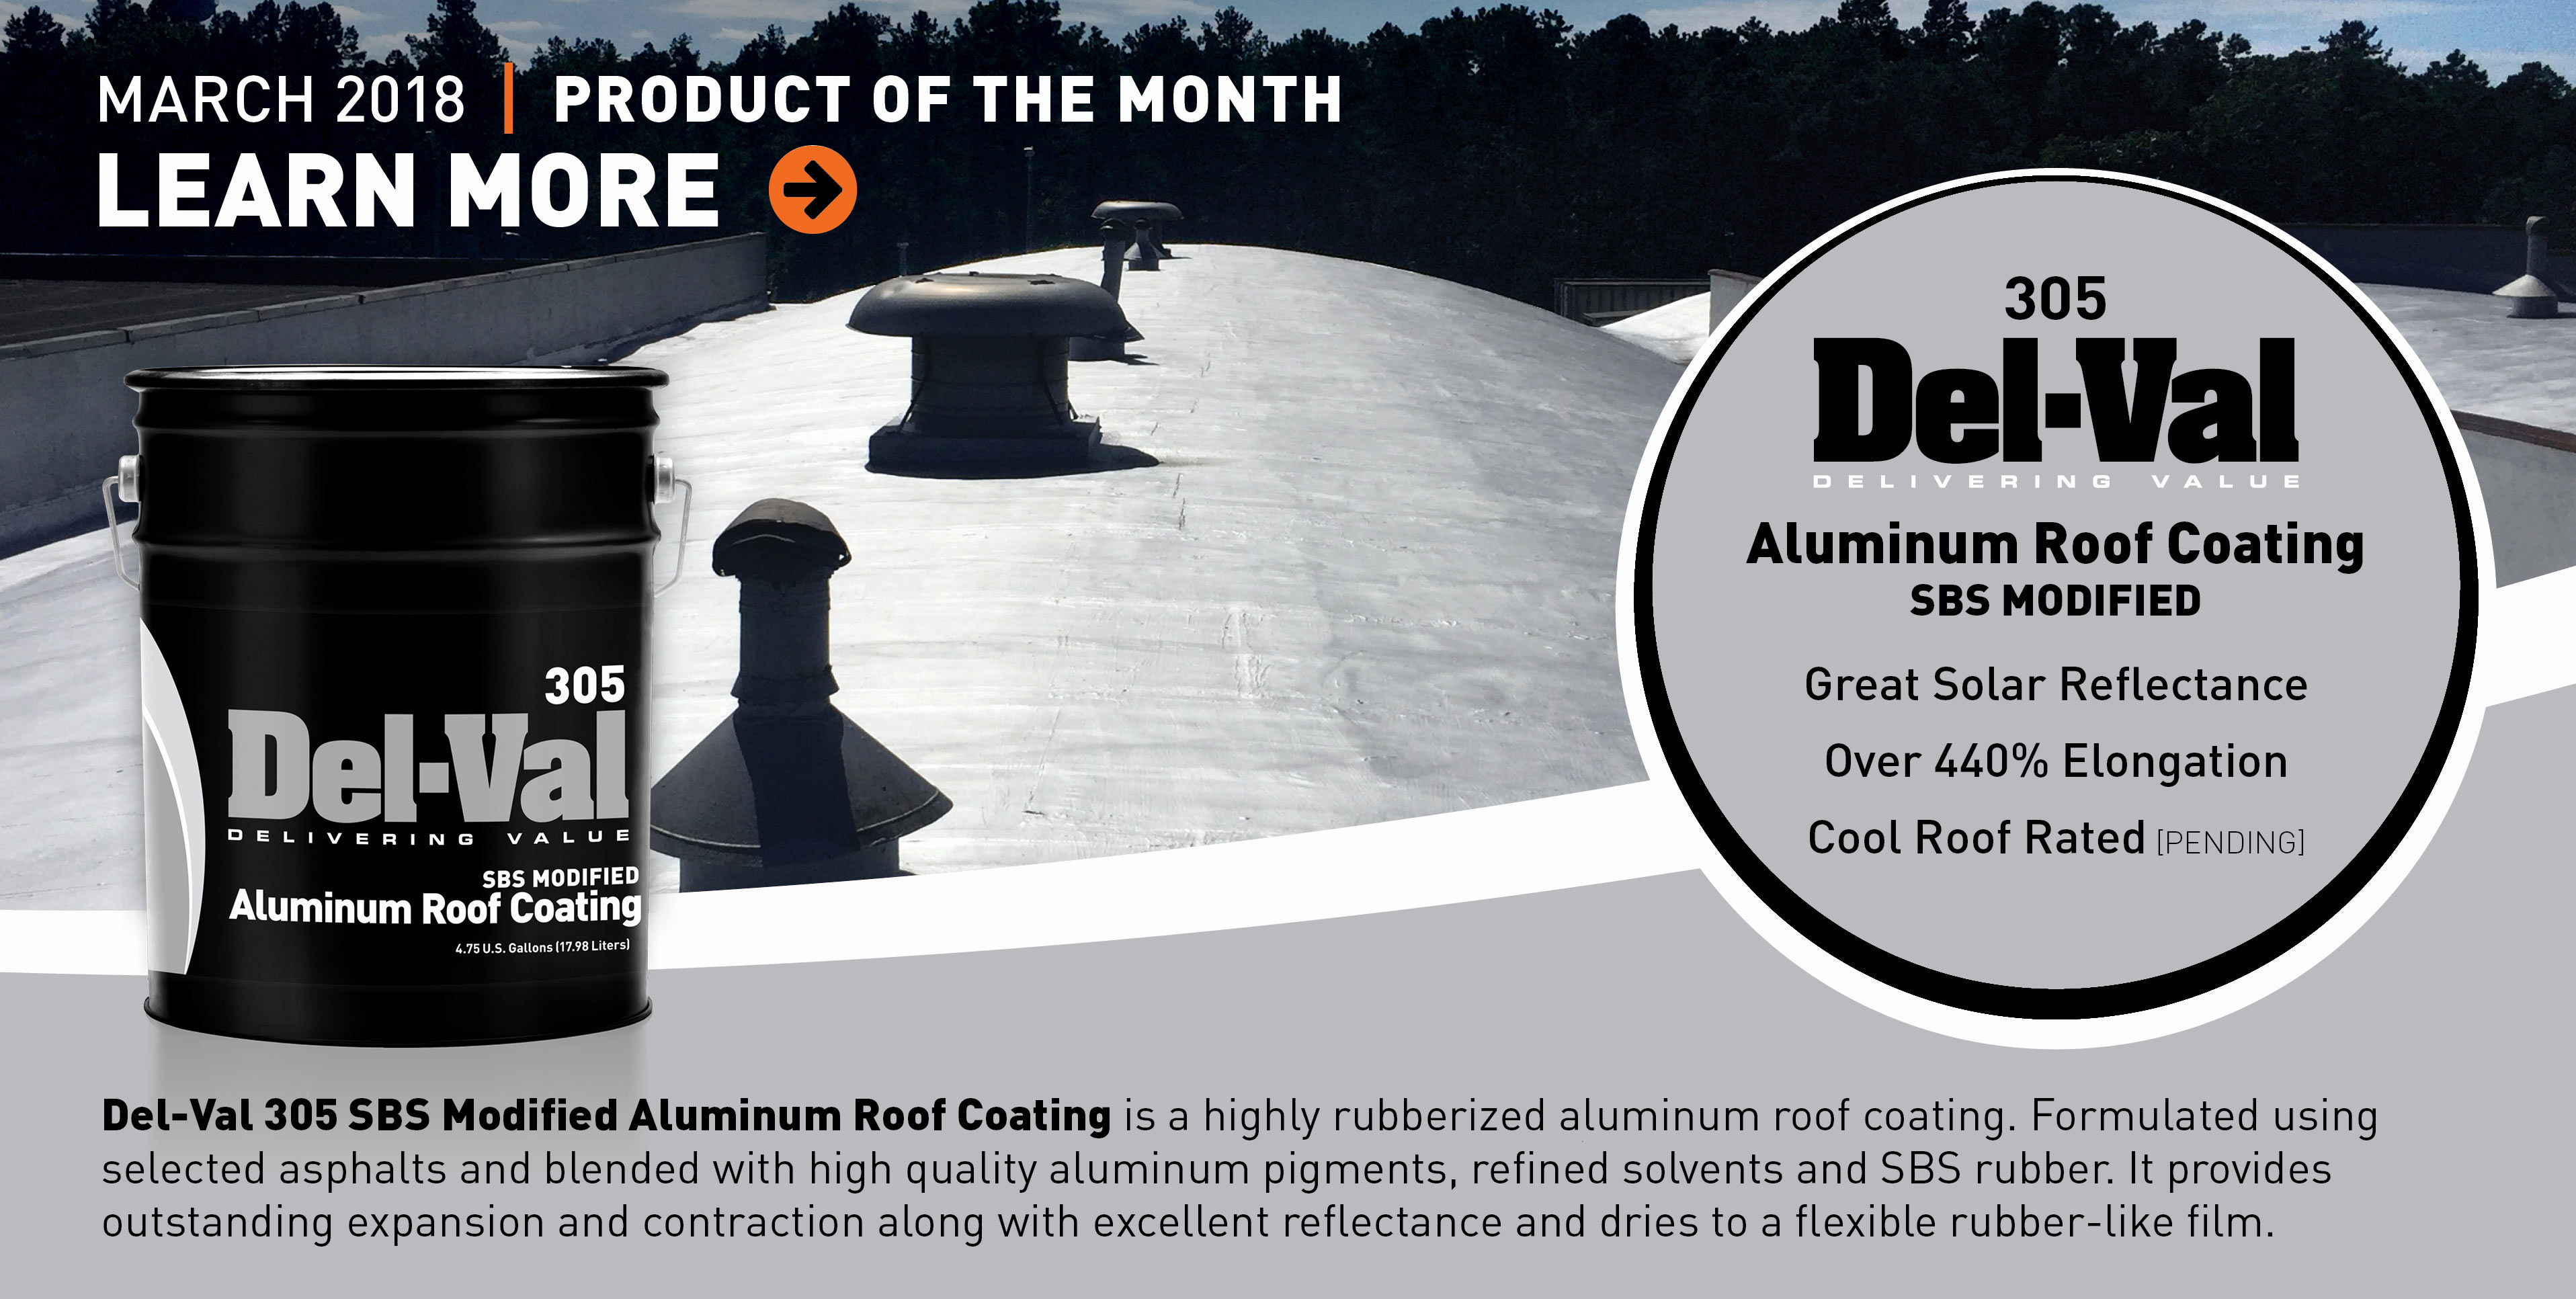 Image of Featured Product of the Month for March 2018: Del-Val 305